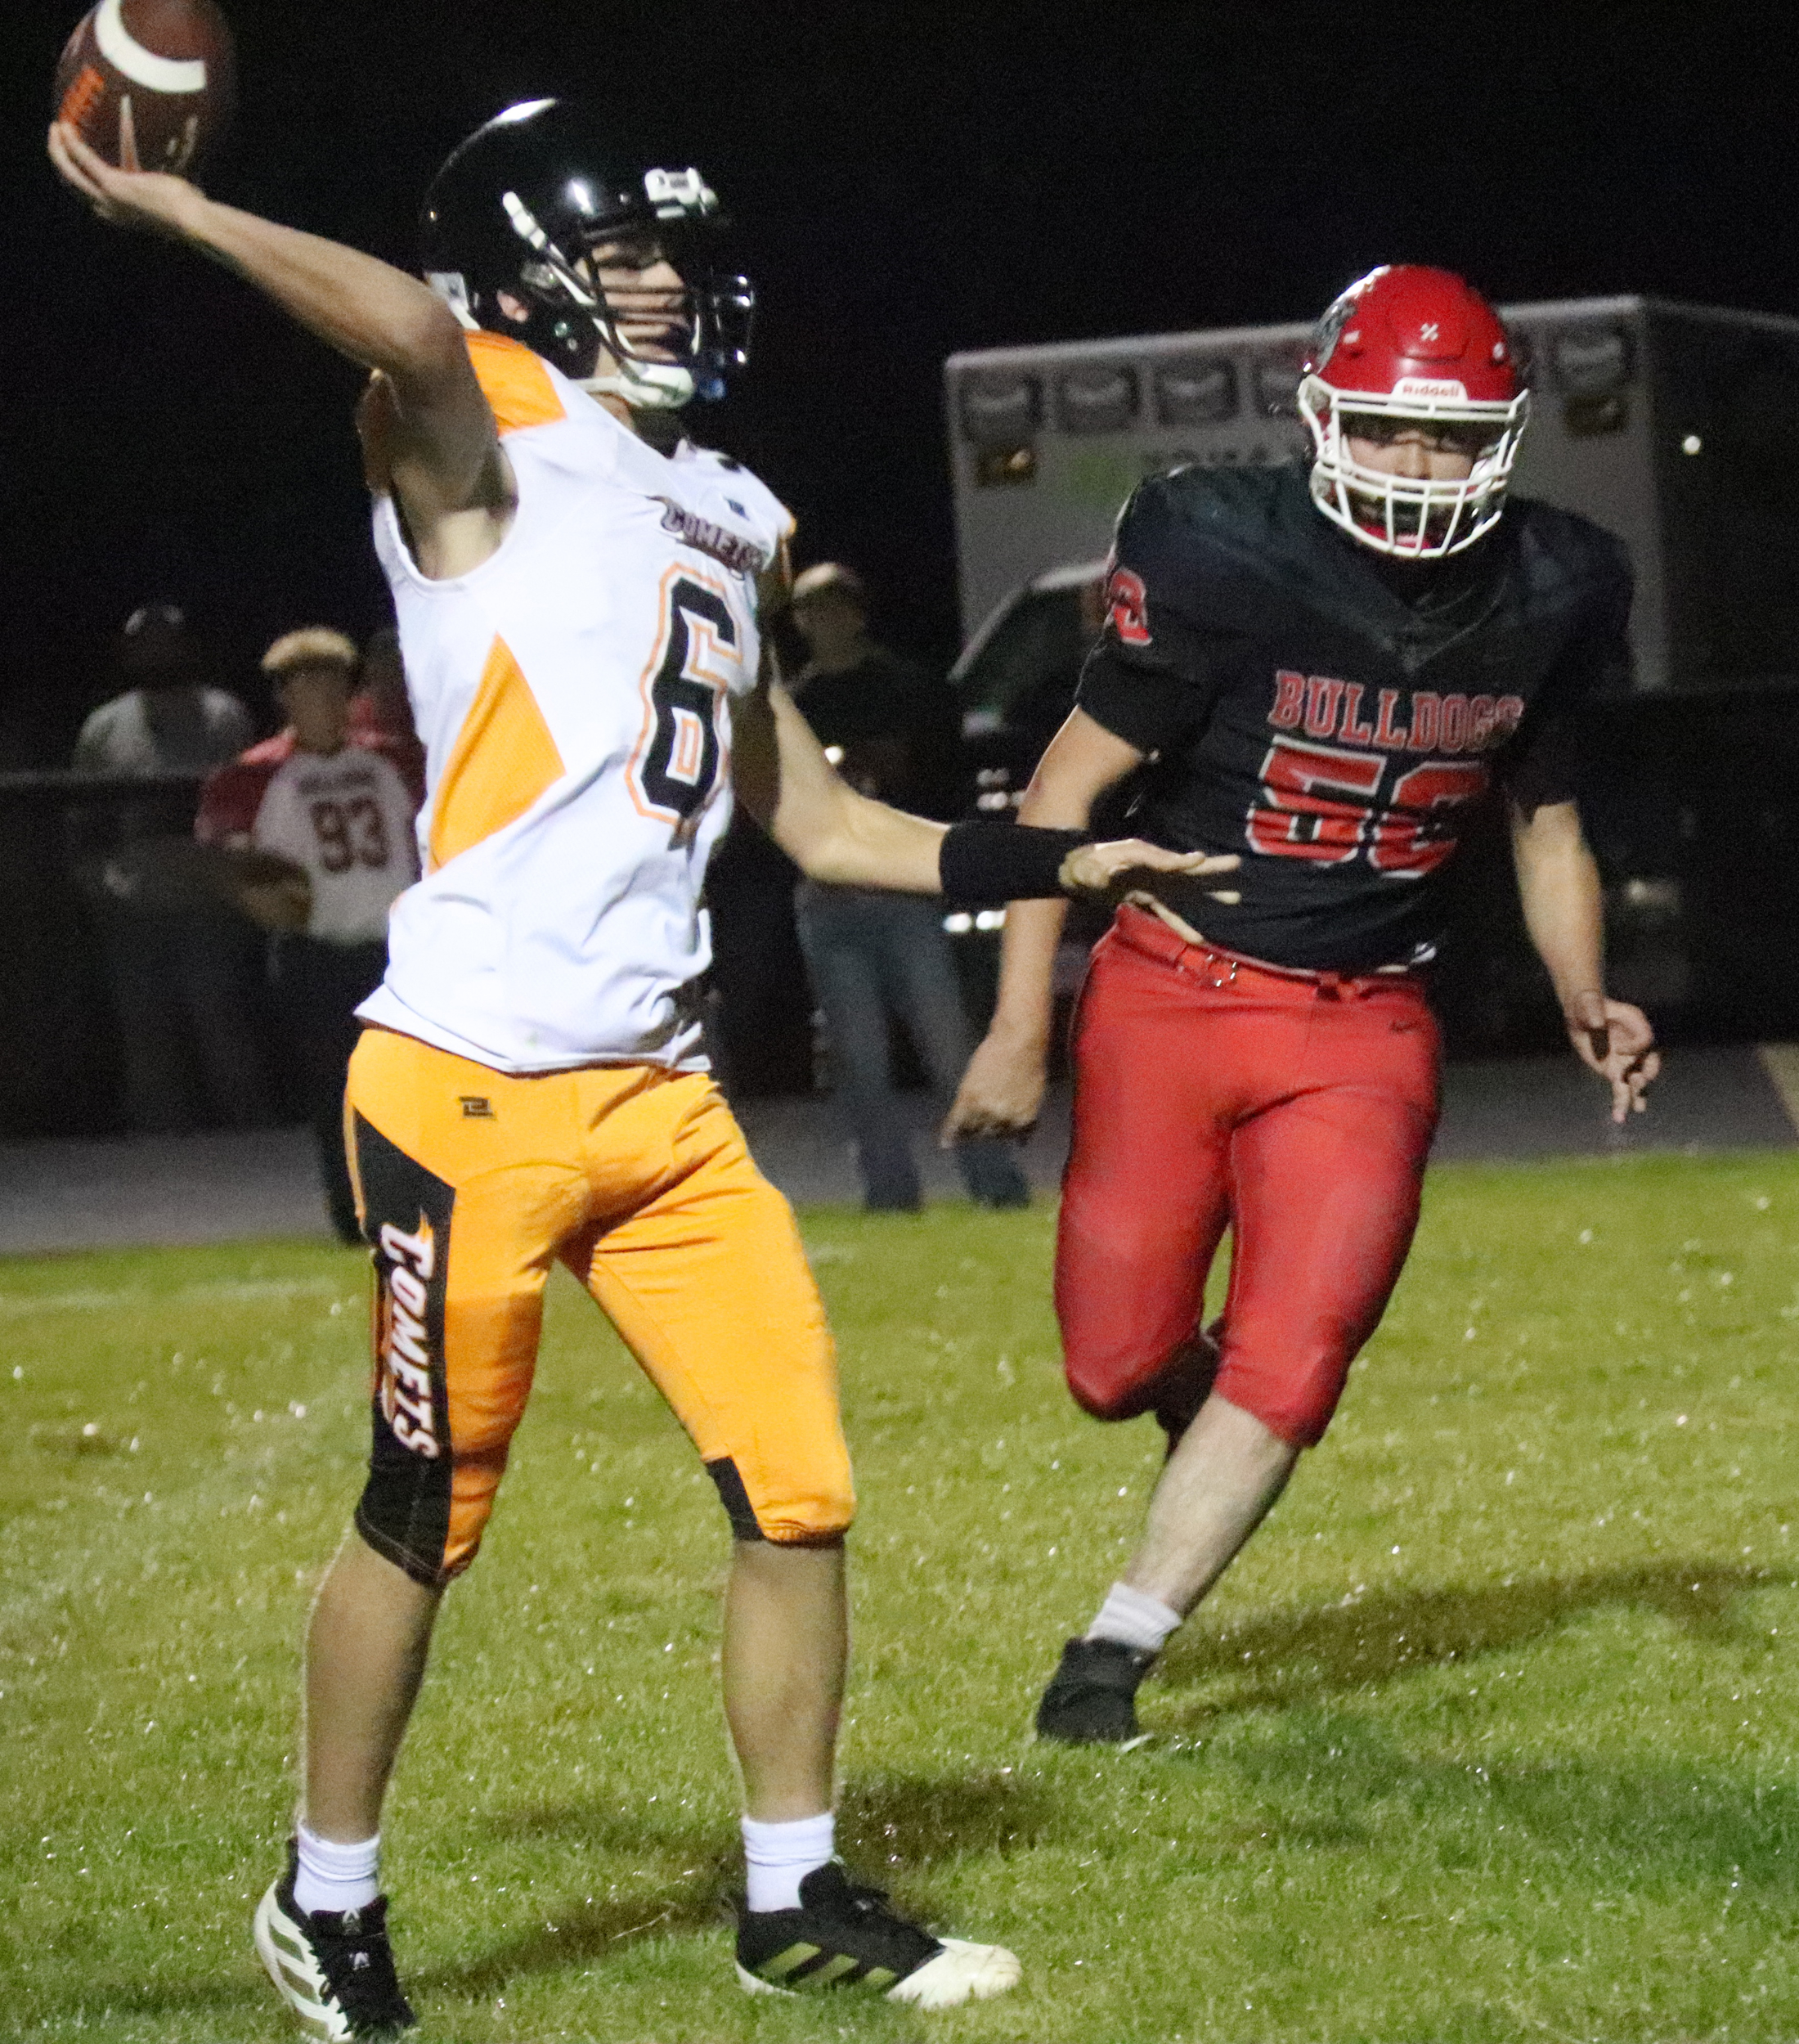 Bulldogs turn turnovers into quick points in 49-14 win over Comets